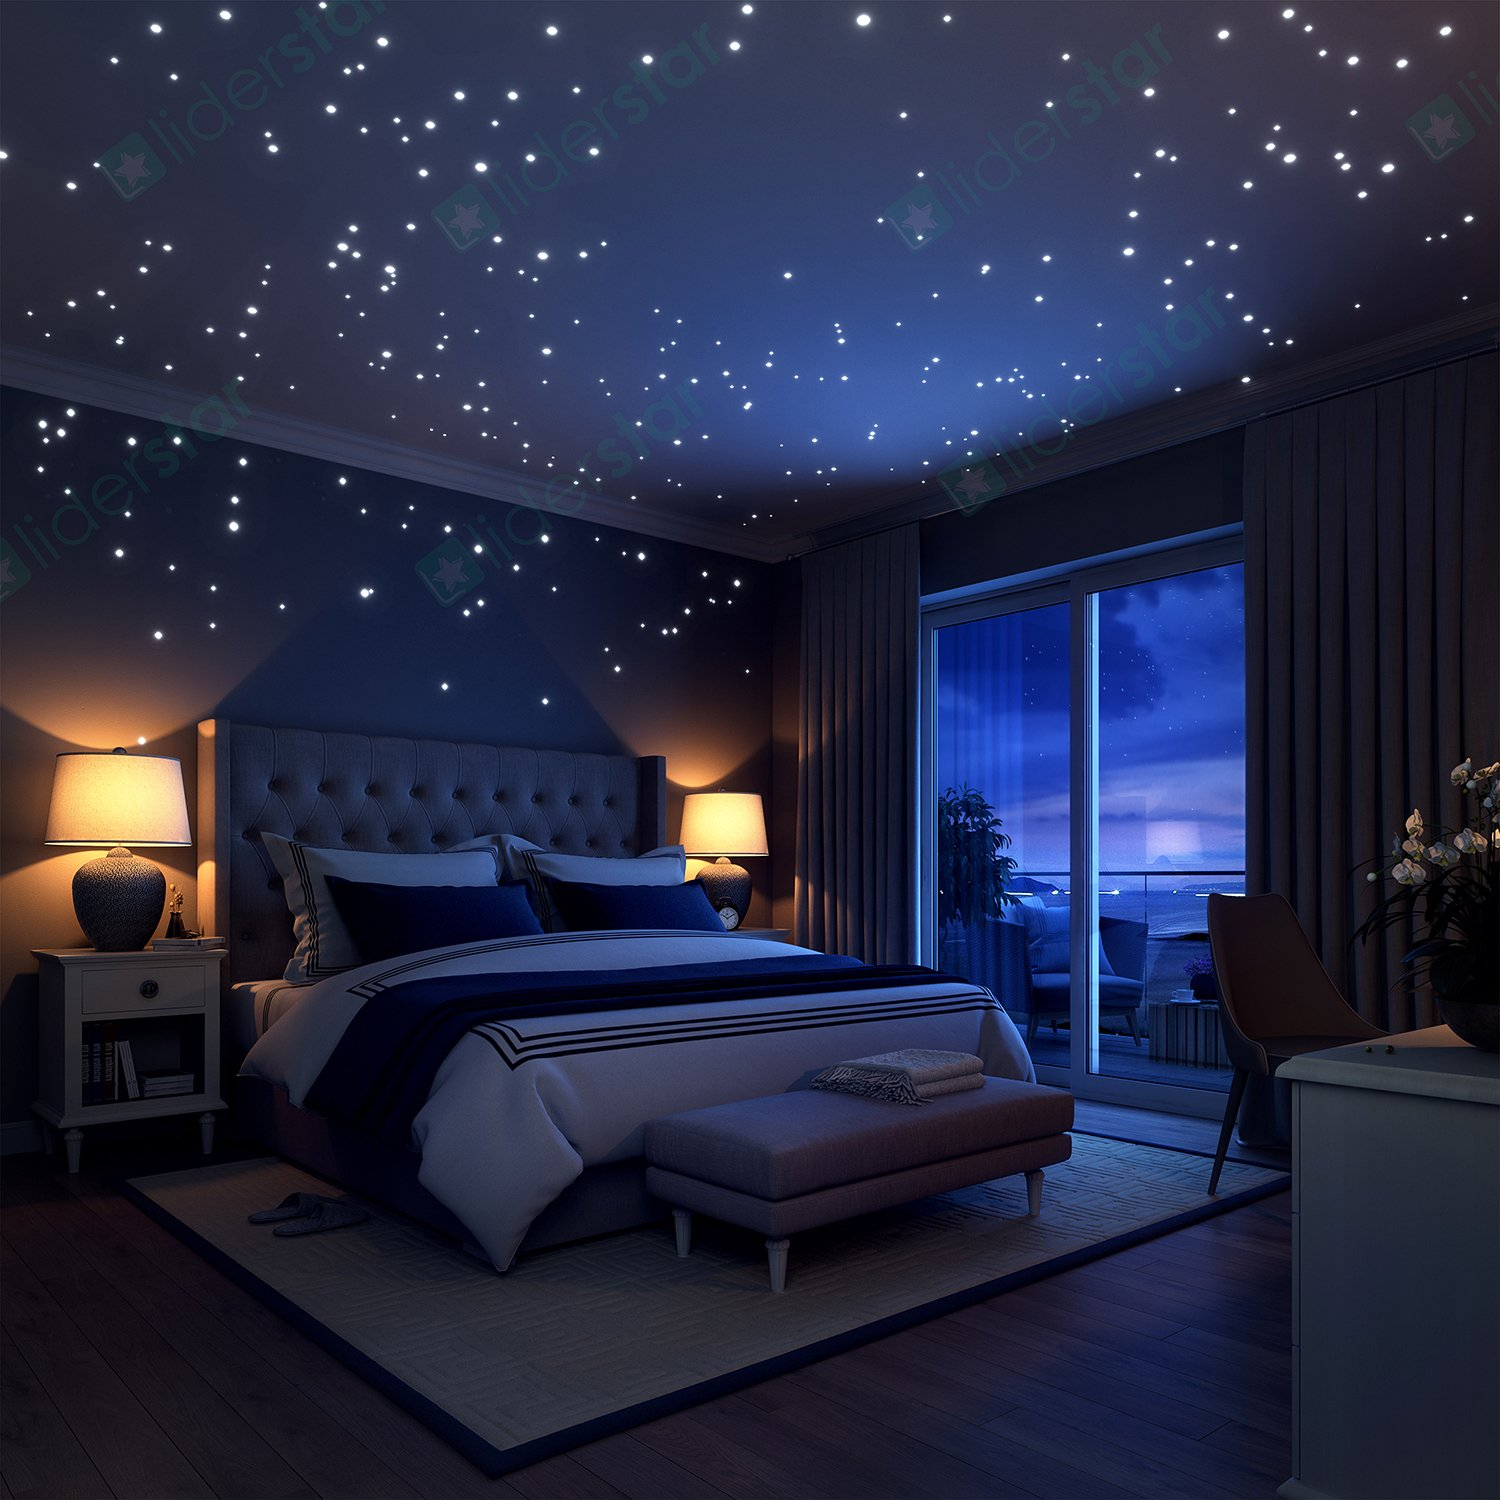 Bedroom ceiling lights stars - Amazon Com Glow In The Dark Stars Wall Stickers 252 Dots And Moon For Starry Sky Perfect For Kids Bedding Room Gift Beautiful Wall Decals By Liderstar